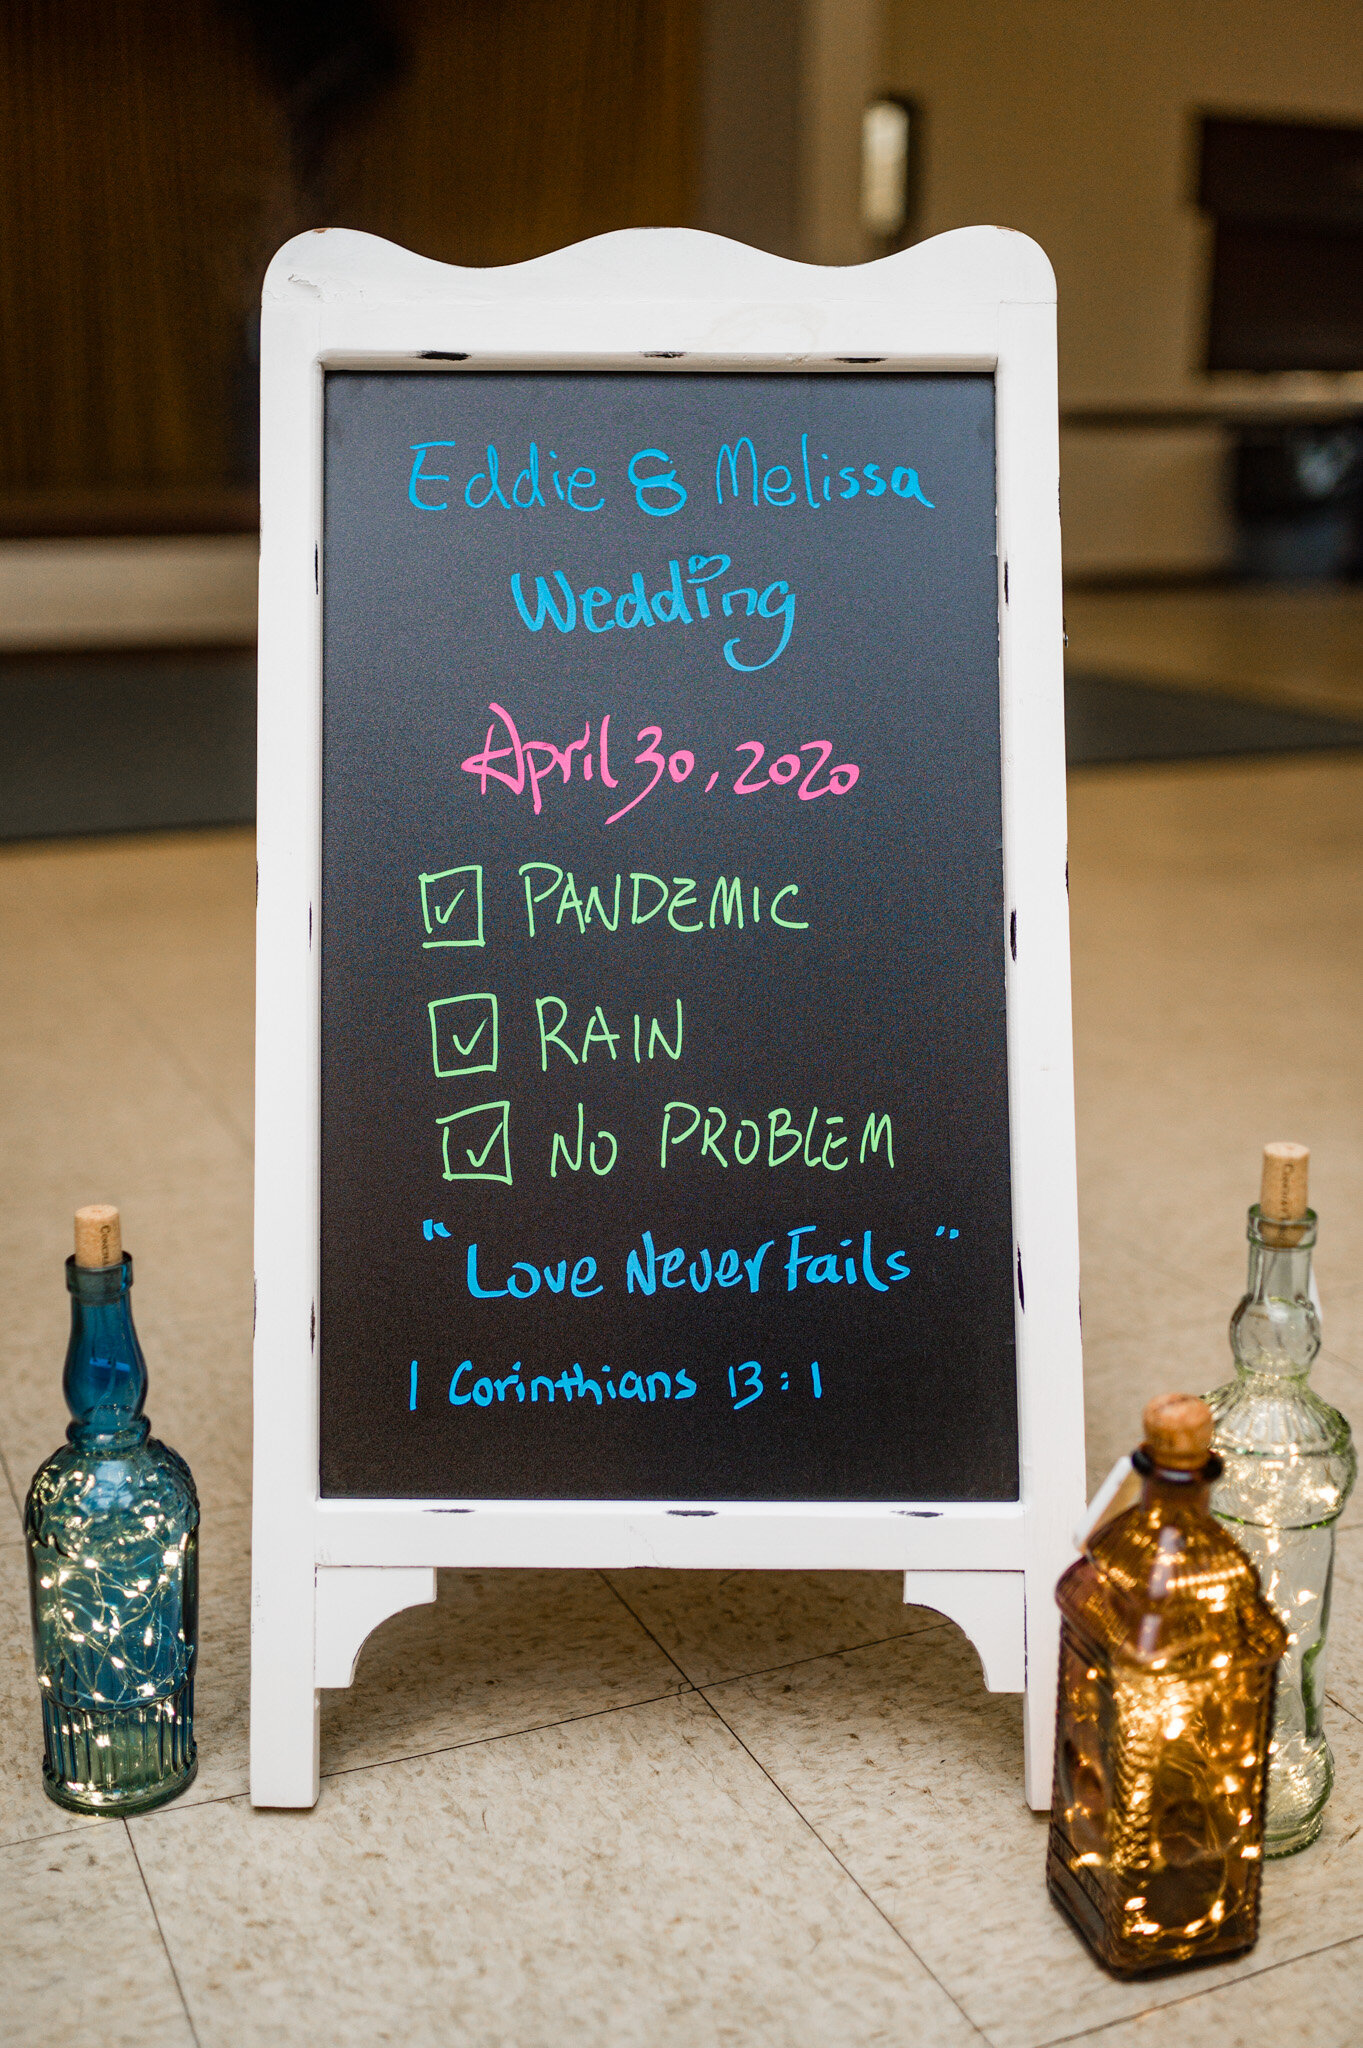 Wedding reception sign tells about the challenges of COVID and rain